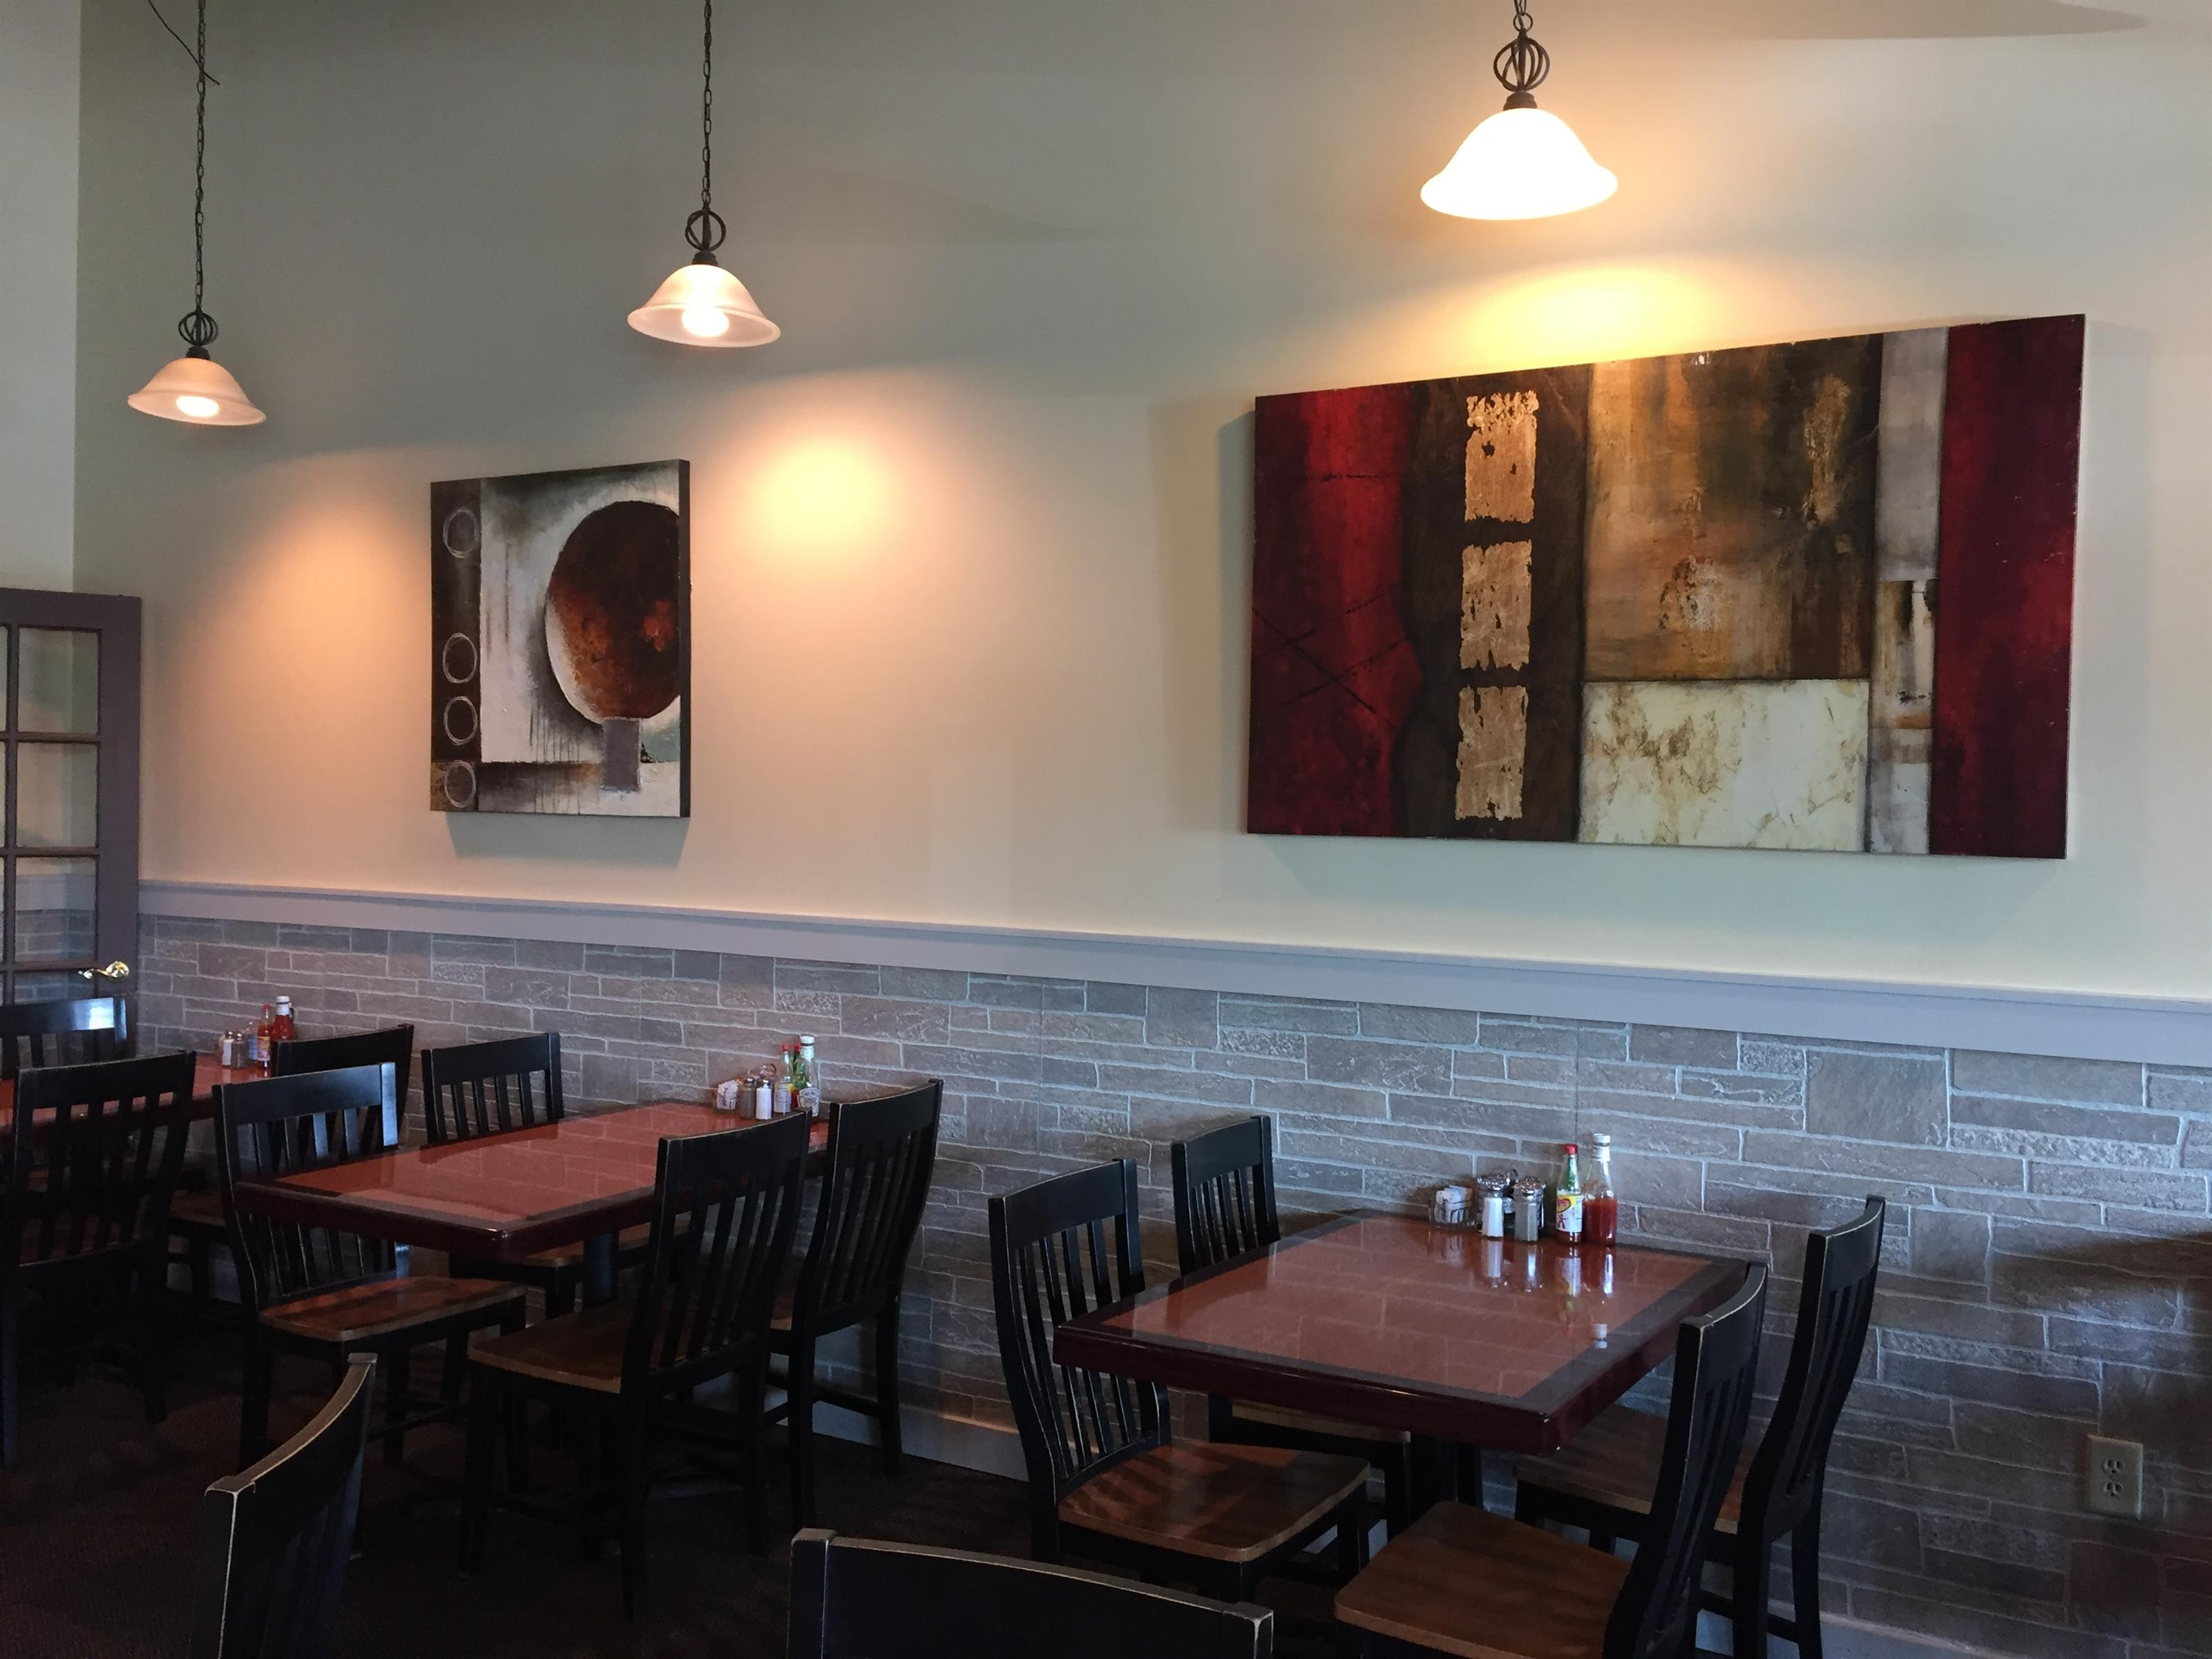 Interior dining area with wooden tables and chairs and abstract art on the walls